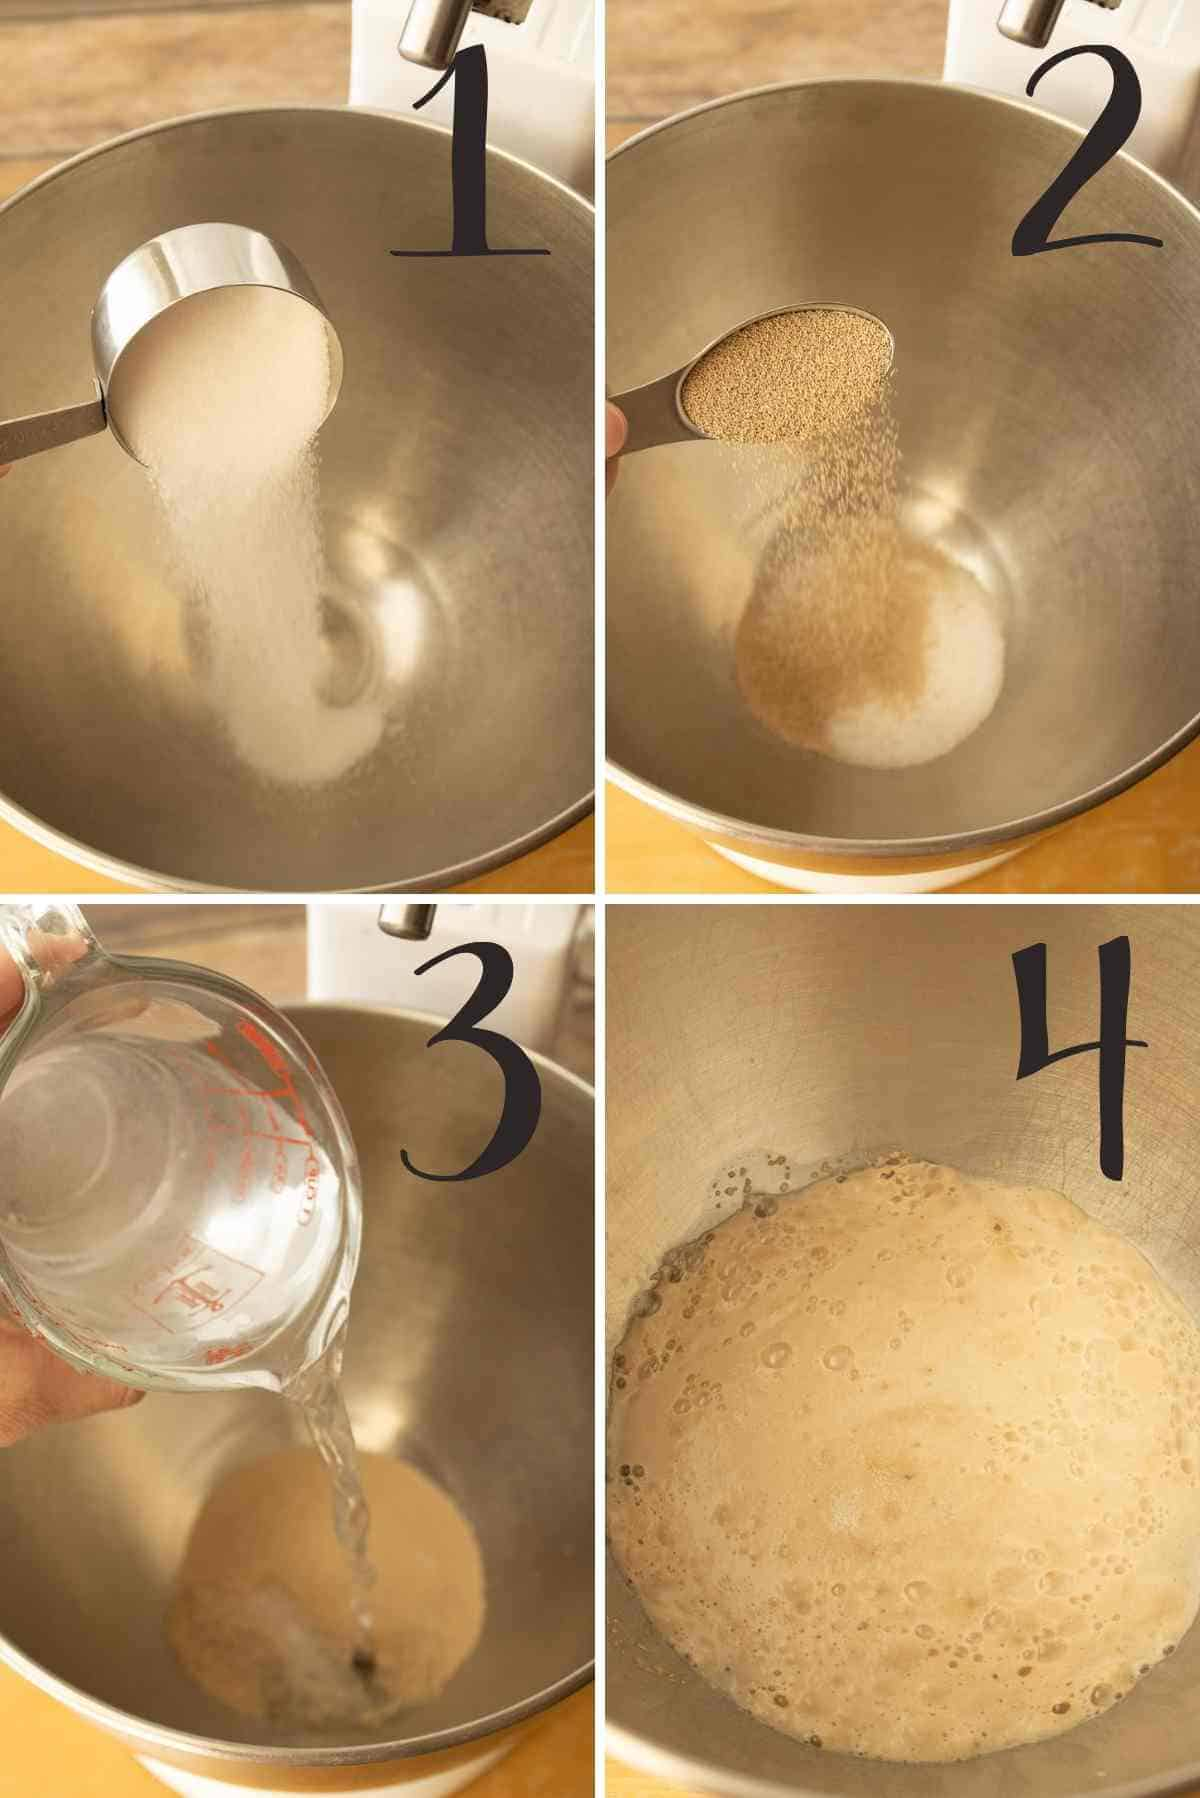 Sugar, yeast and warm water added to a mixing bowl.